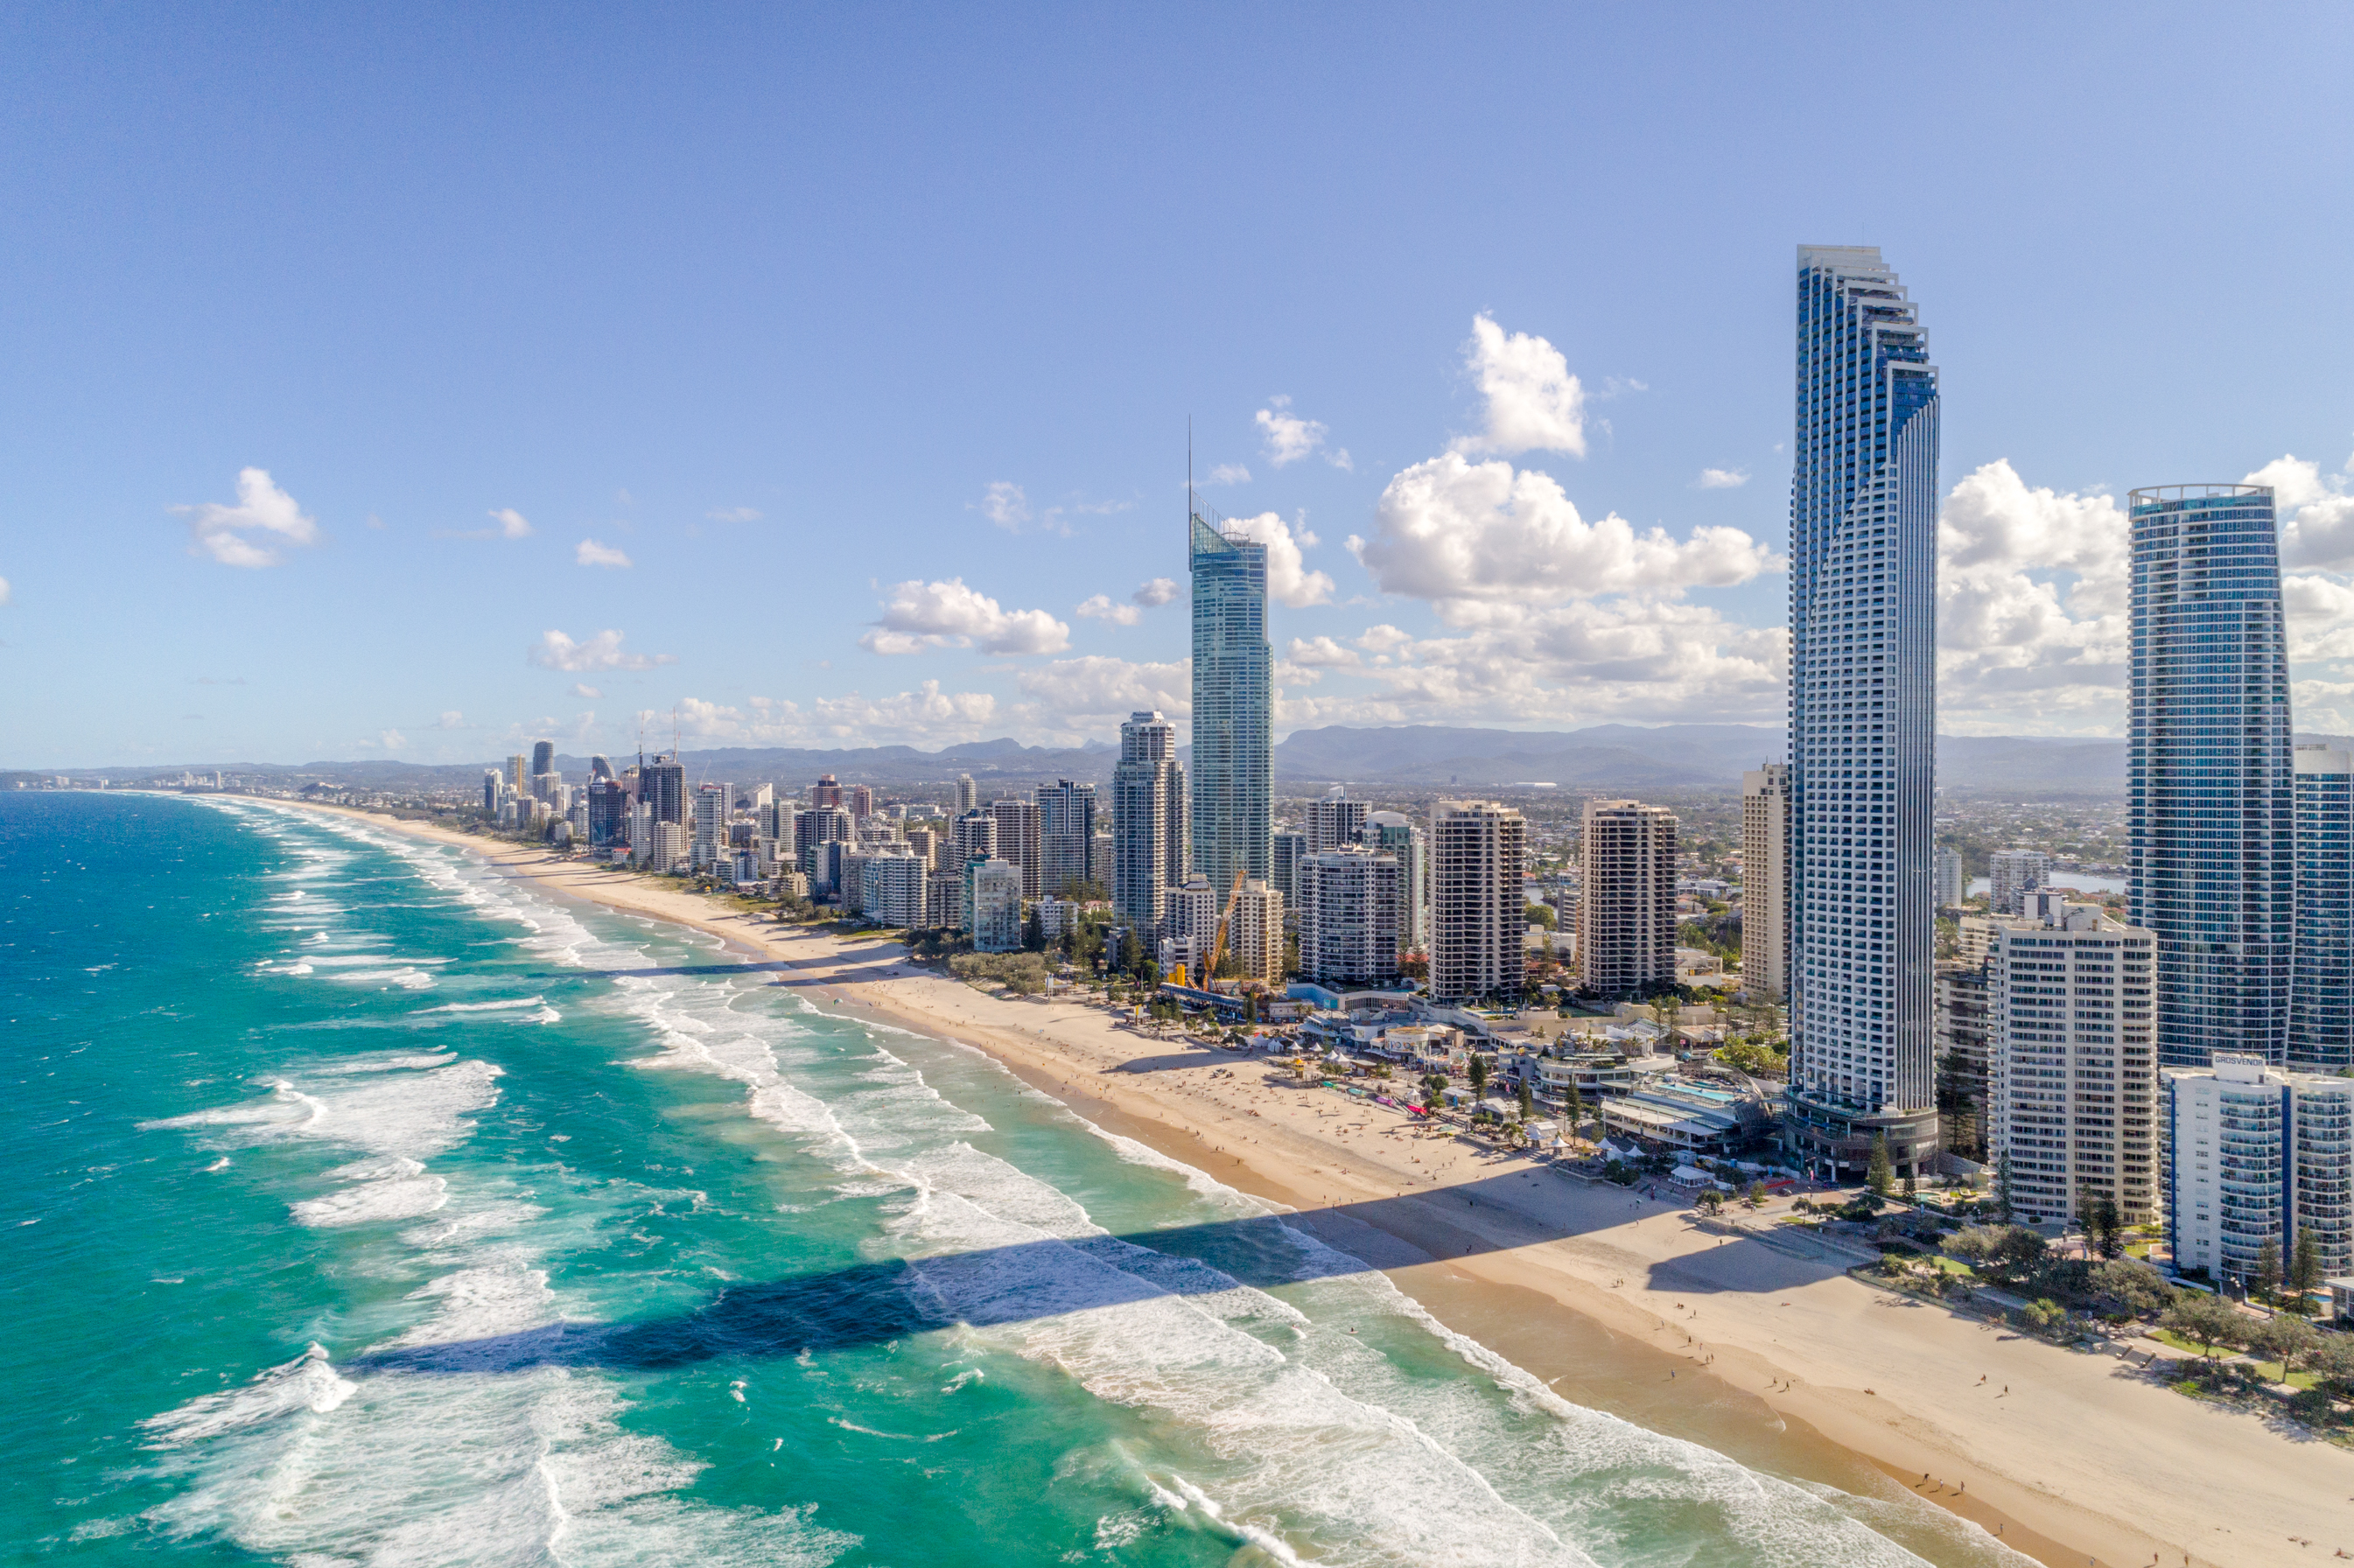 Aerial Photography Surfers Paradise